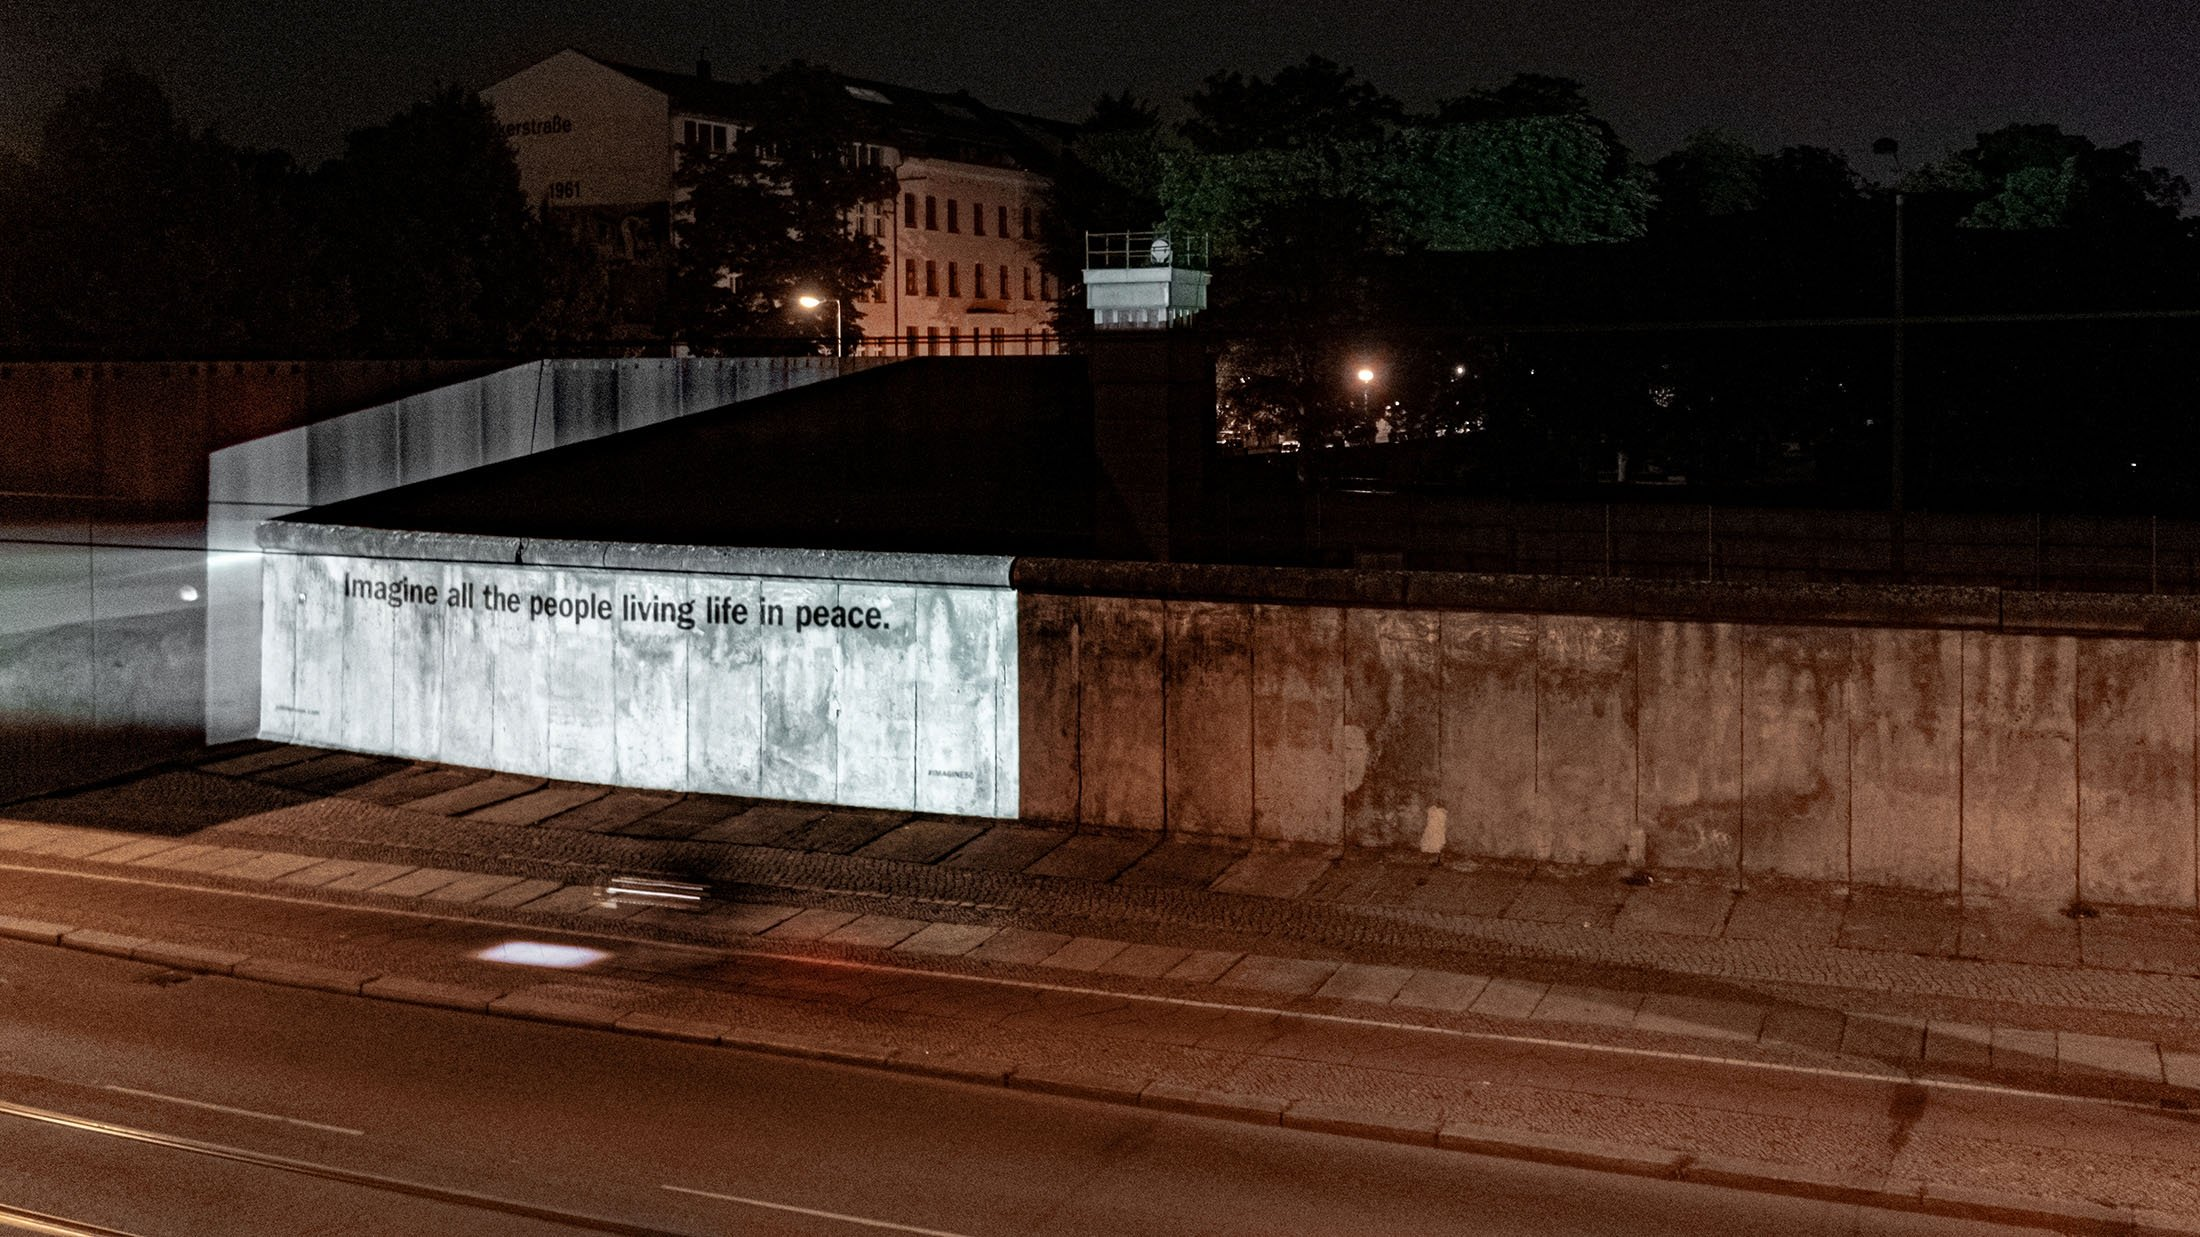 A lyric of John Lennon's and Yoko Ono's song 'Imagine' is projected on Berlin Wall to mark 50 years since the late Beatle released the famed track and album, in Berlin, Germany, Sept. 7, 2021. (Universal Music Group via Reuters)